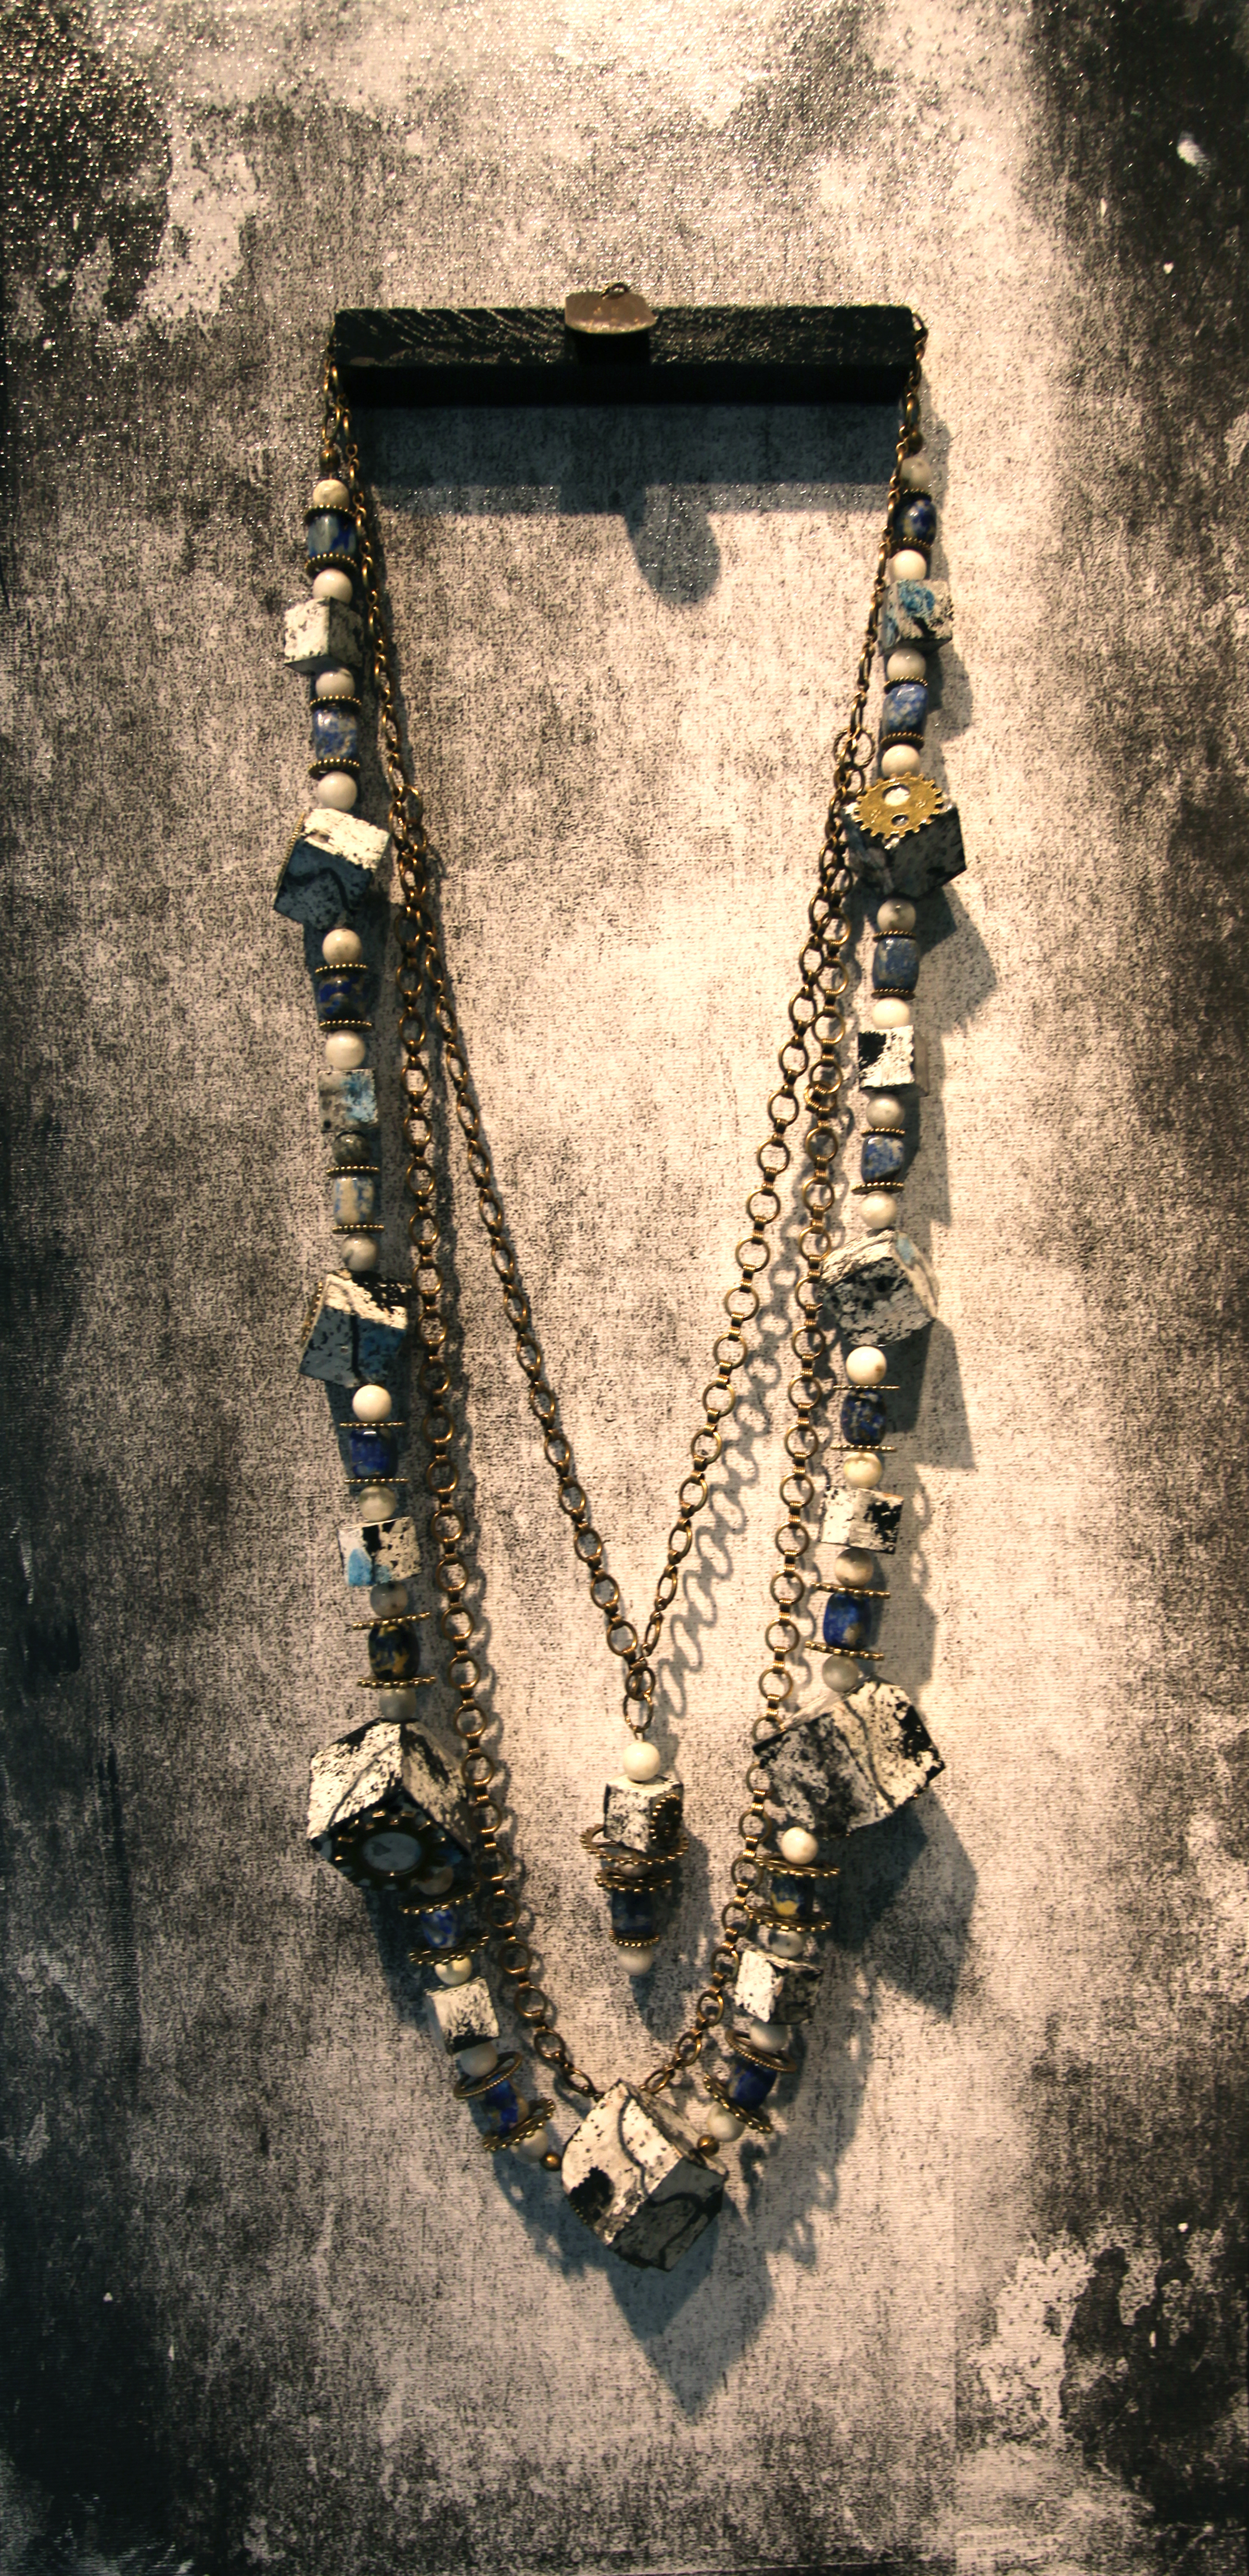 JK 002 Necklace with panel, 2016 Mixed Media